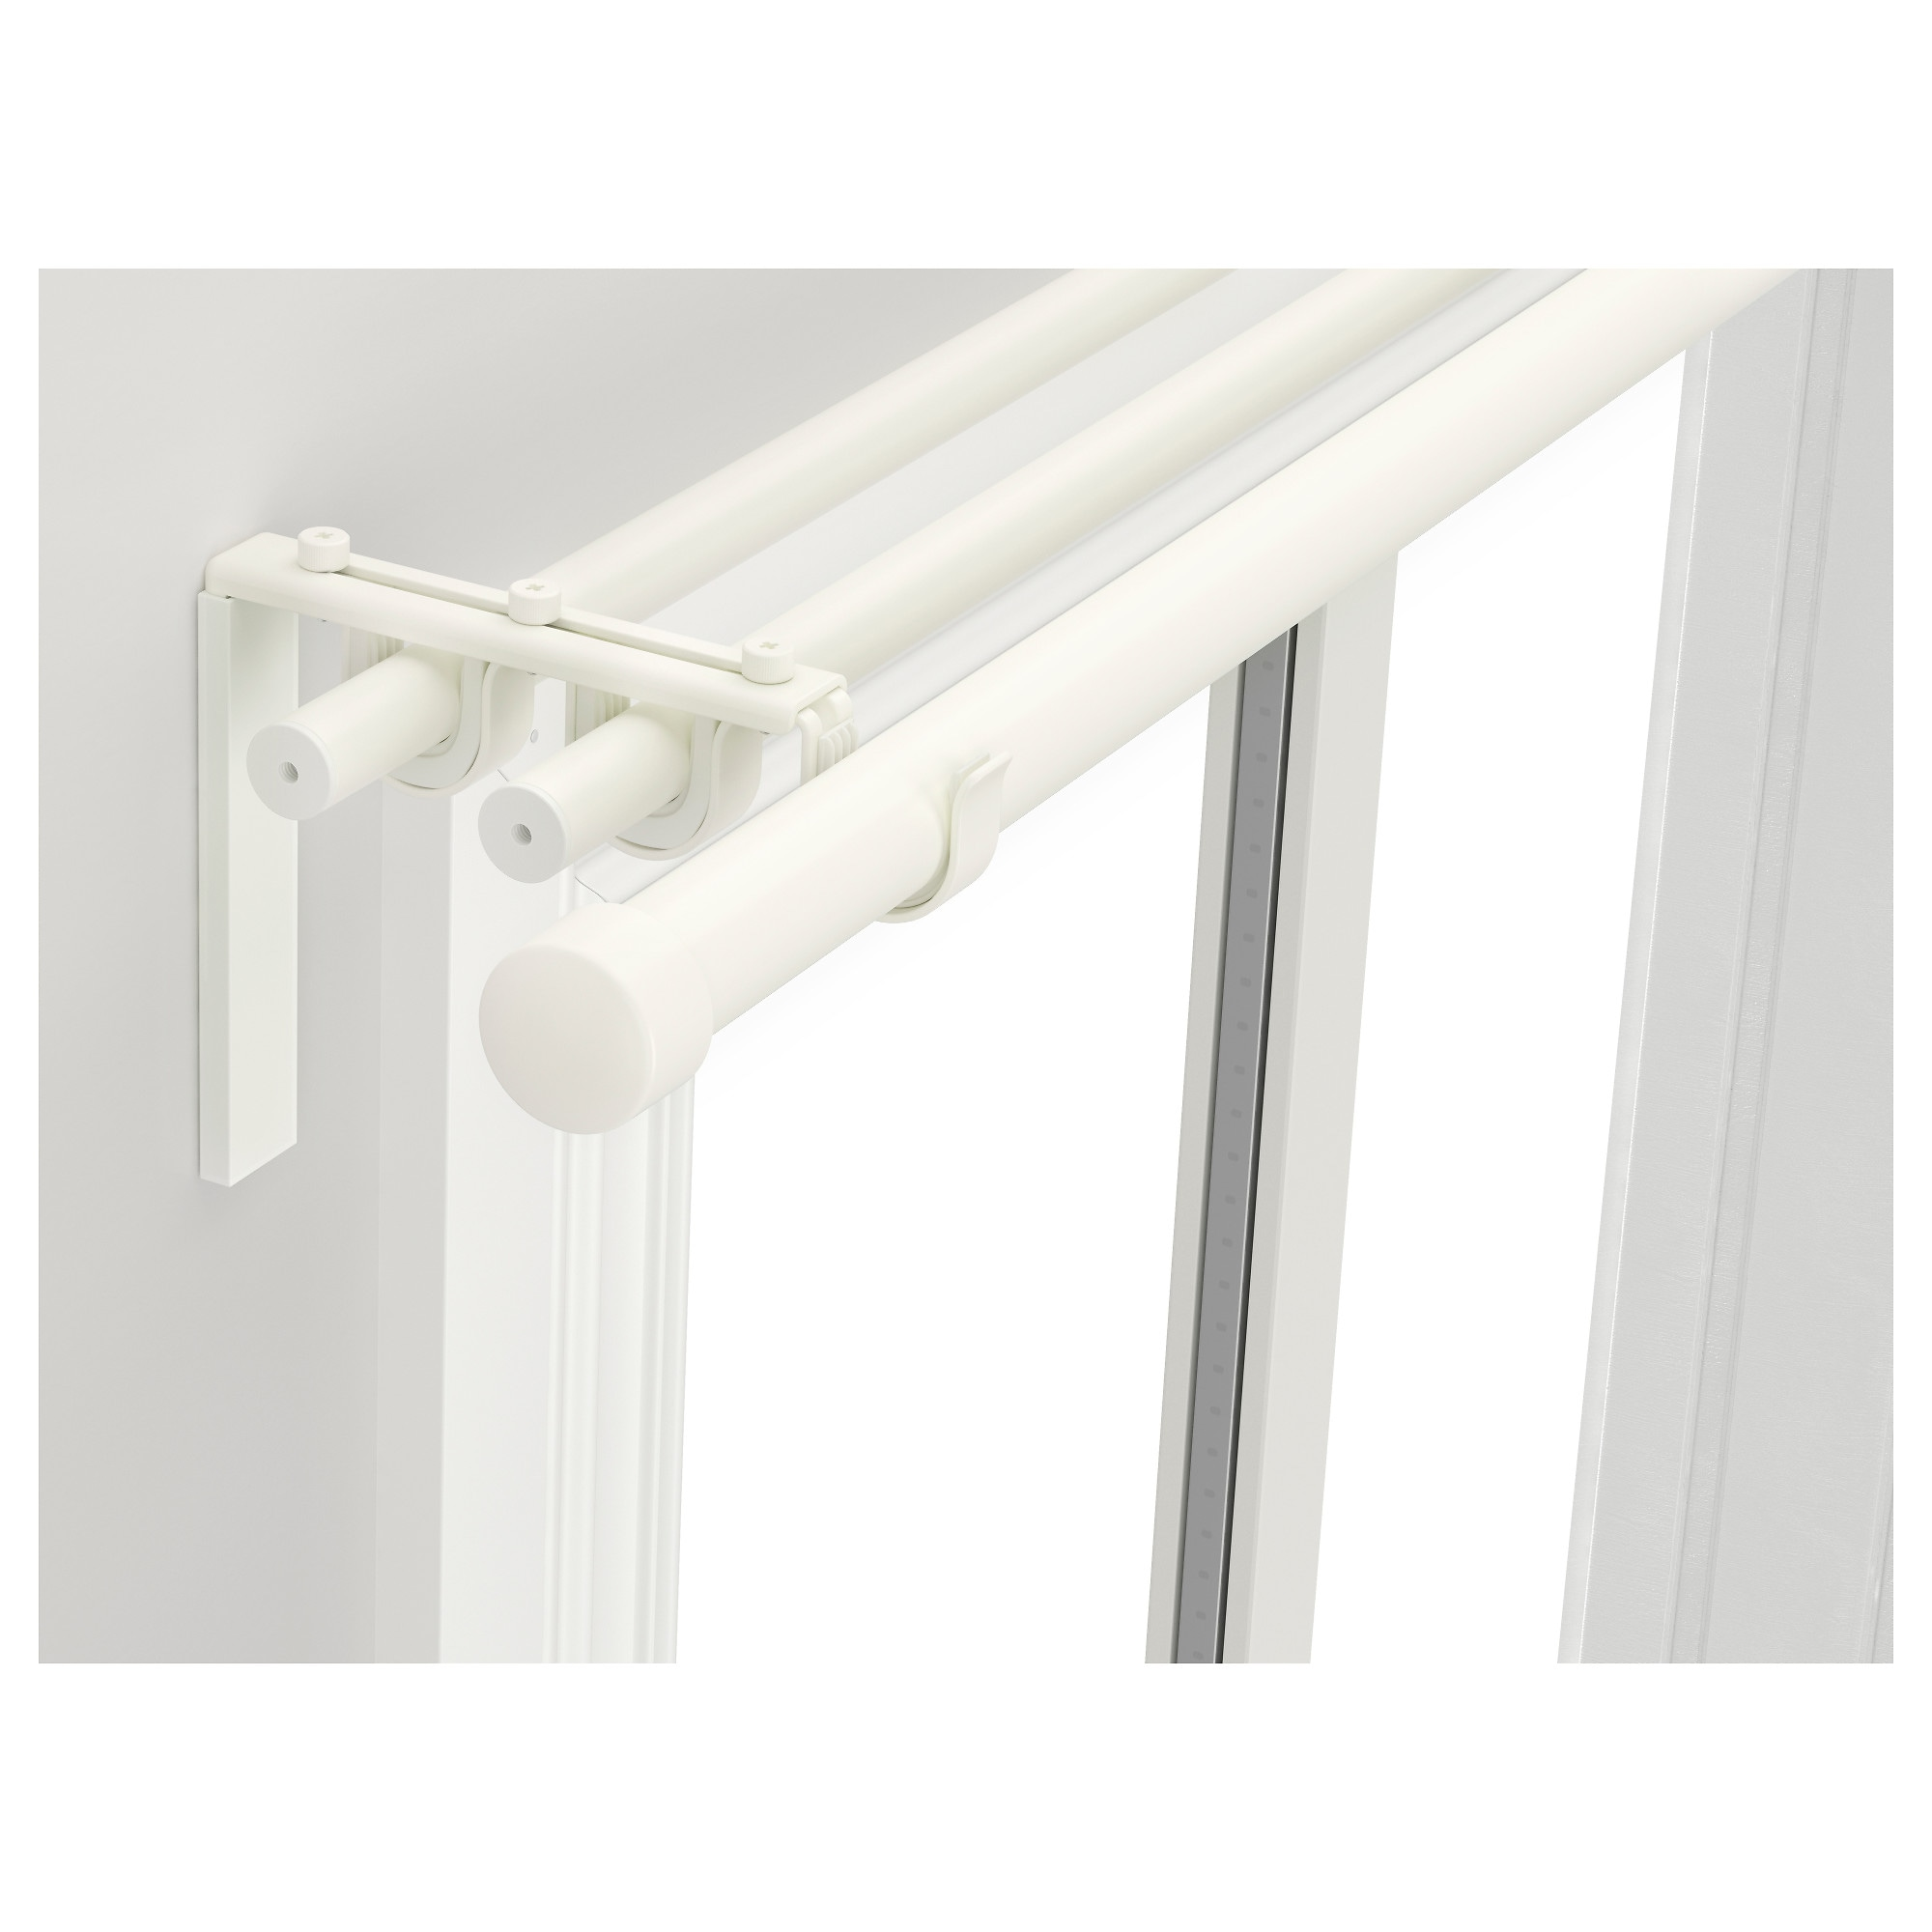 White wood curtain rods and brackets - White Wood Curtain Rods And Brackets 27